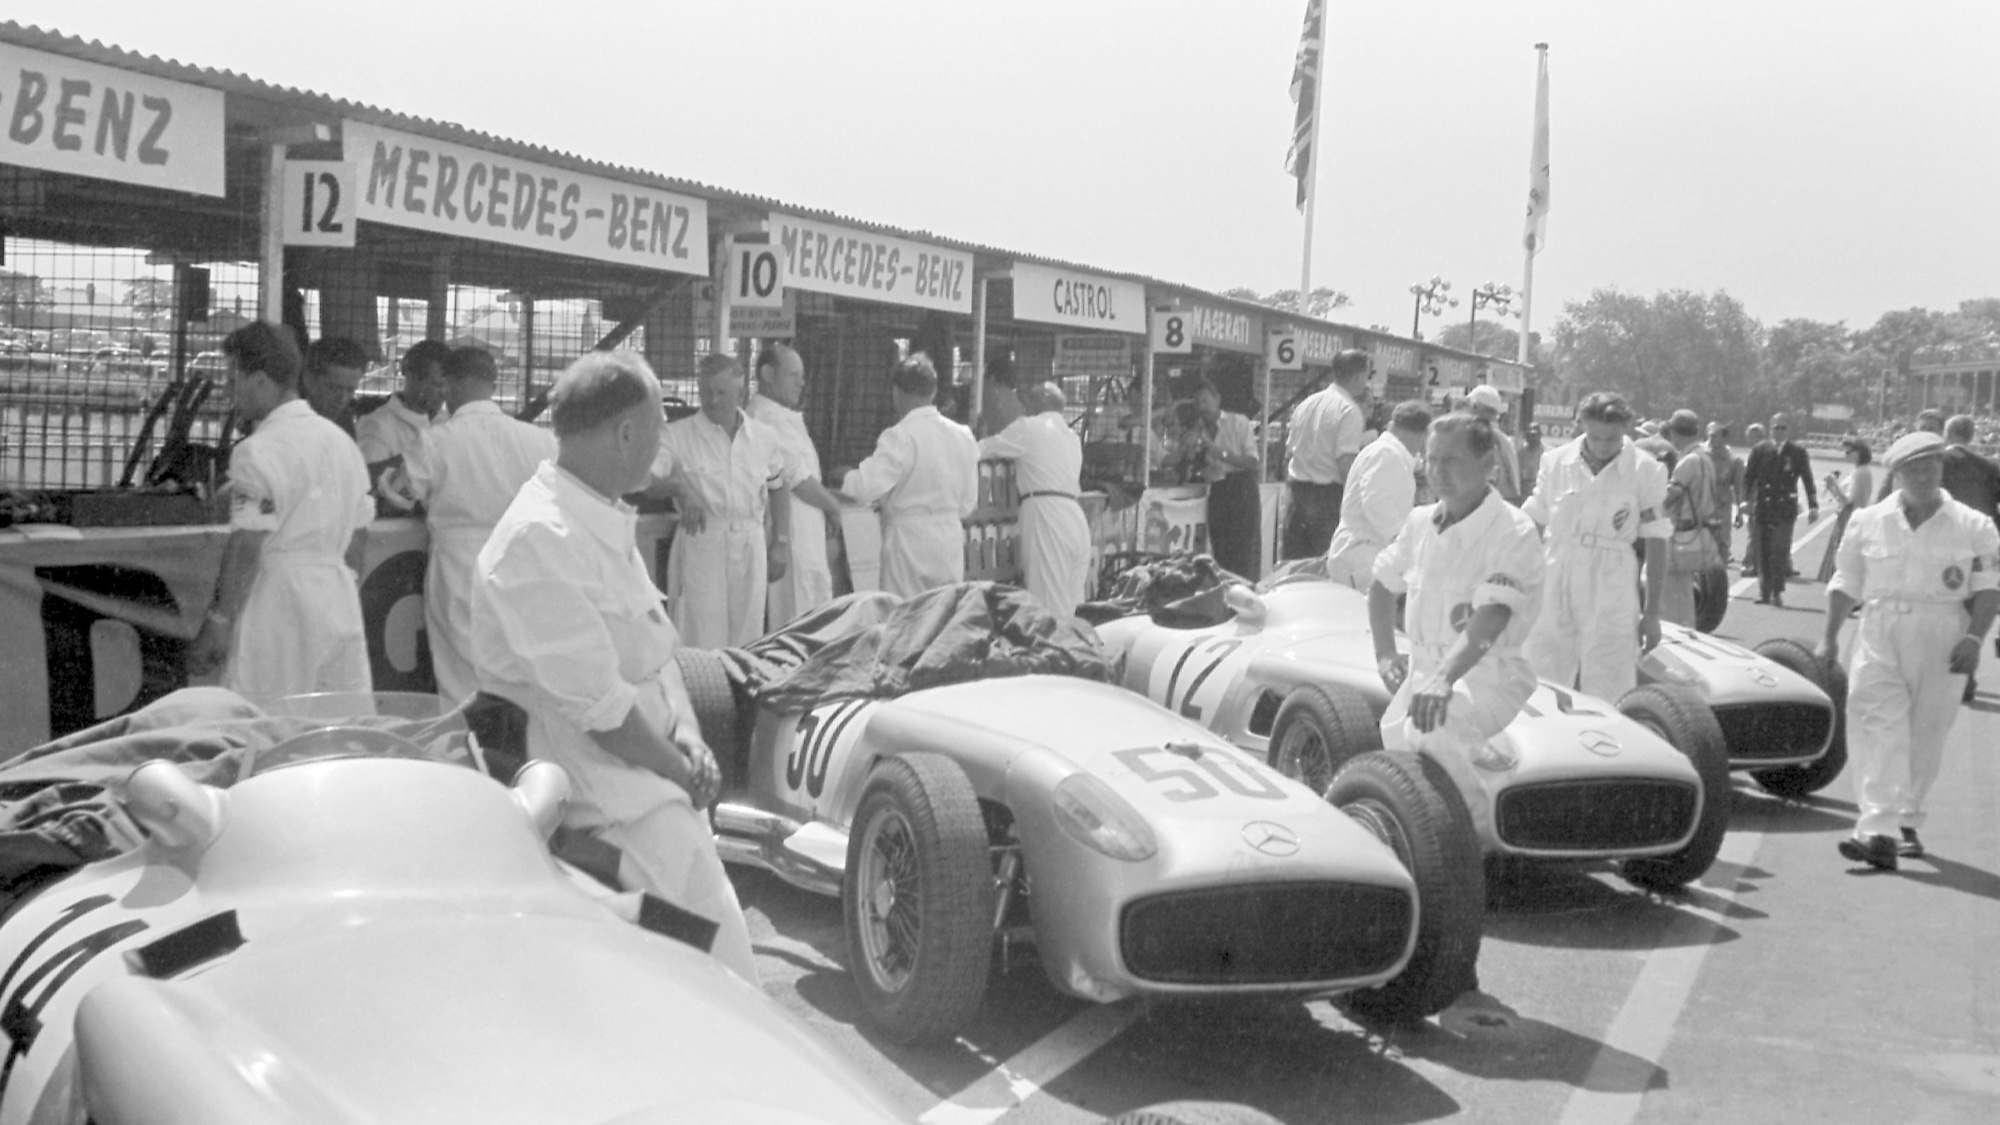 Mercedes cars in the pits ahead of the 1955 British Grand Prix at Aintree